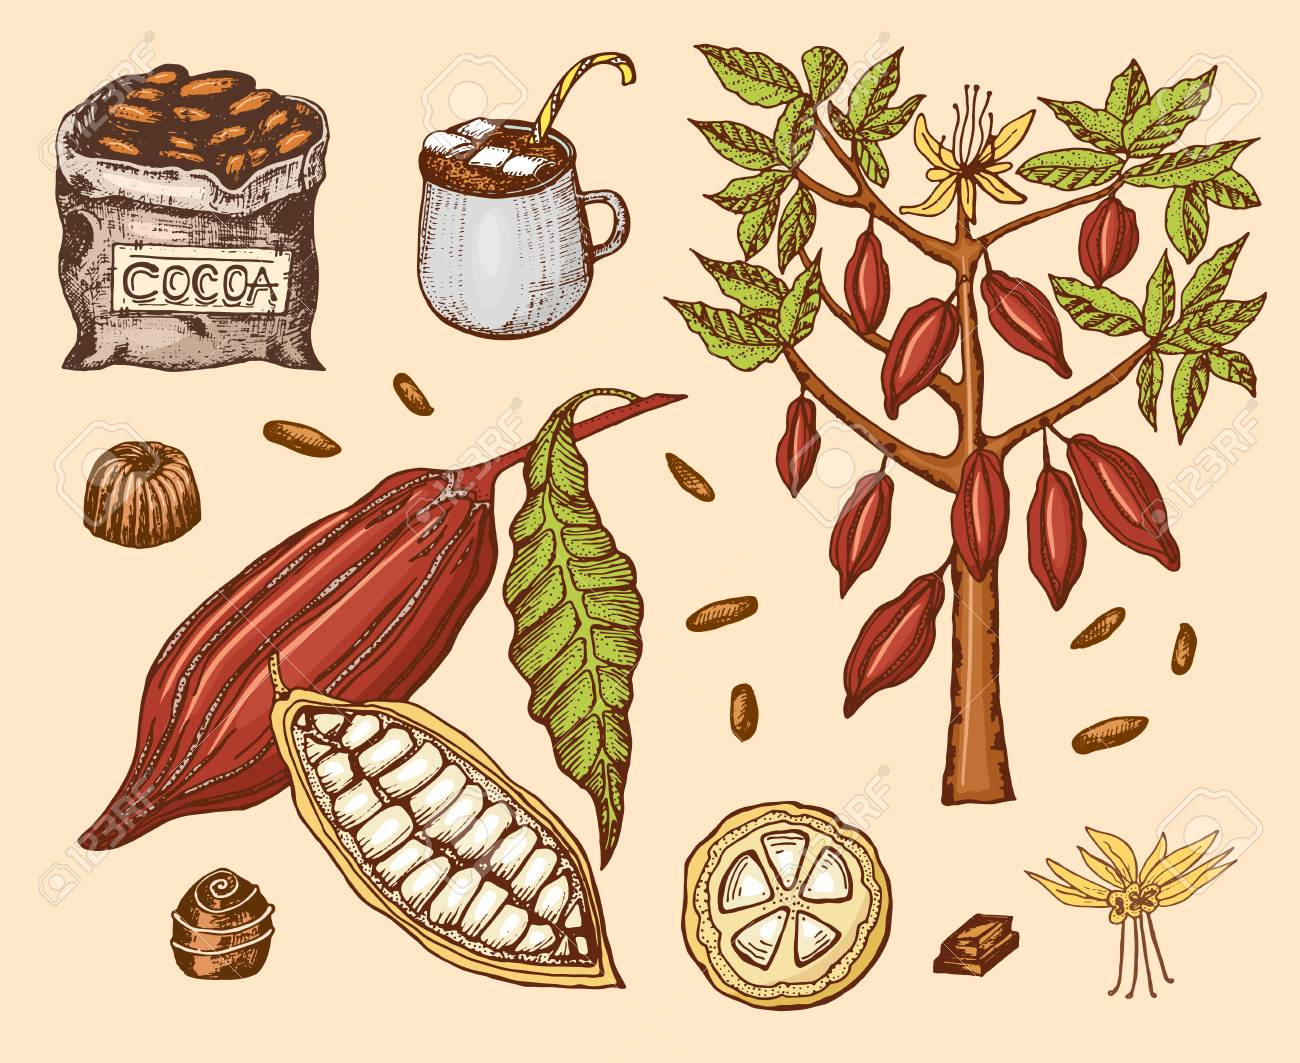 Cocoa Beans And Hot Chocolate Natural Organic Product Seeds Royalty Free Cliparts Vectors And Stock Illustration Image 103356293